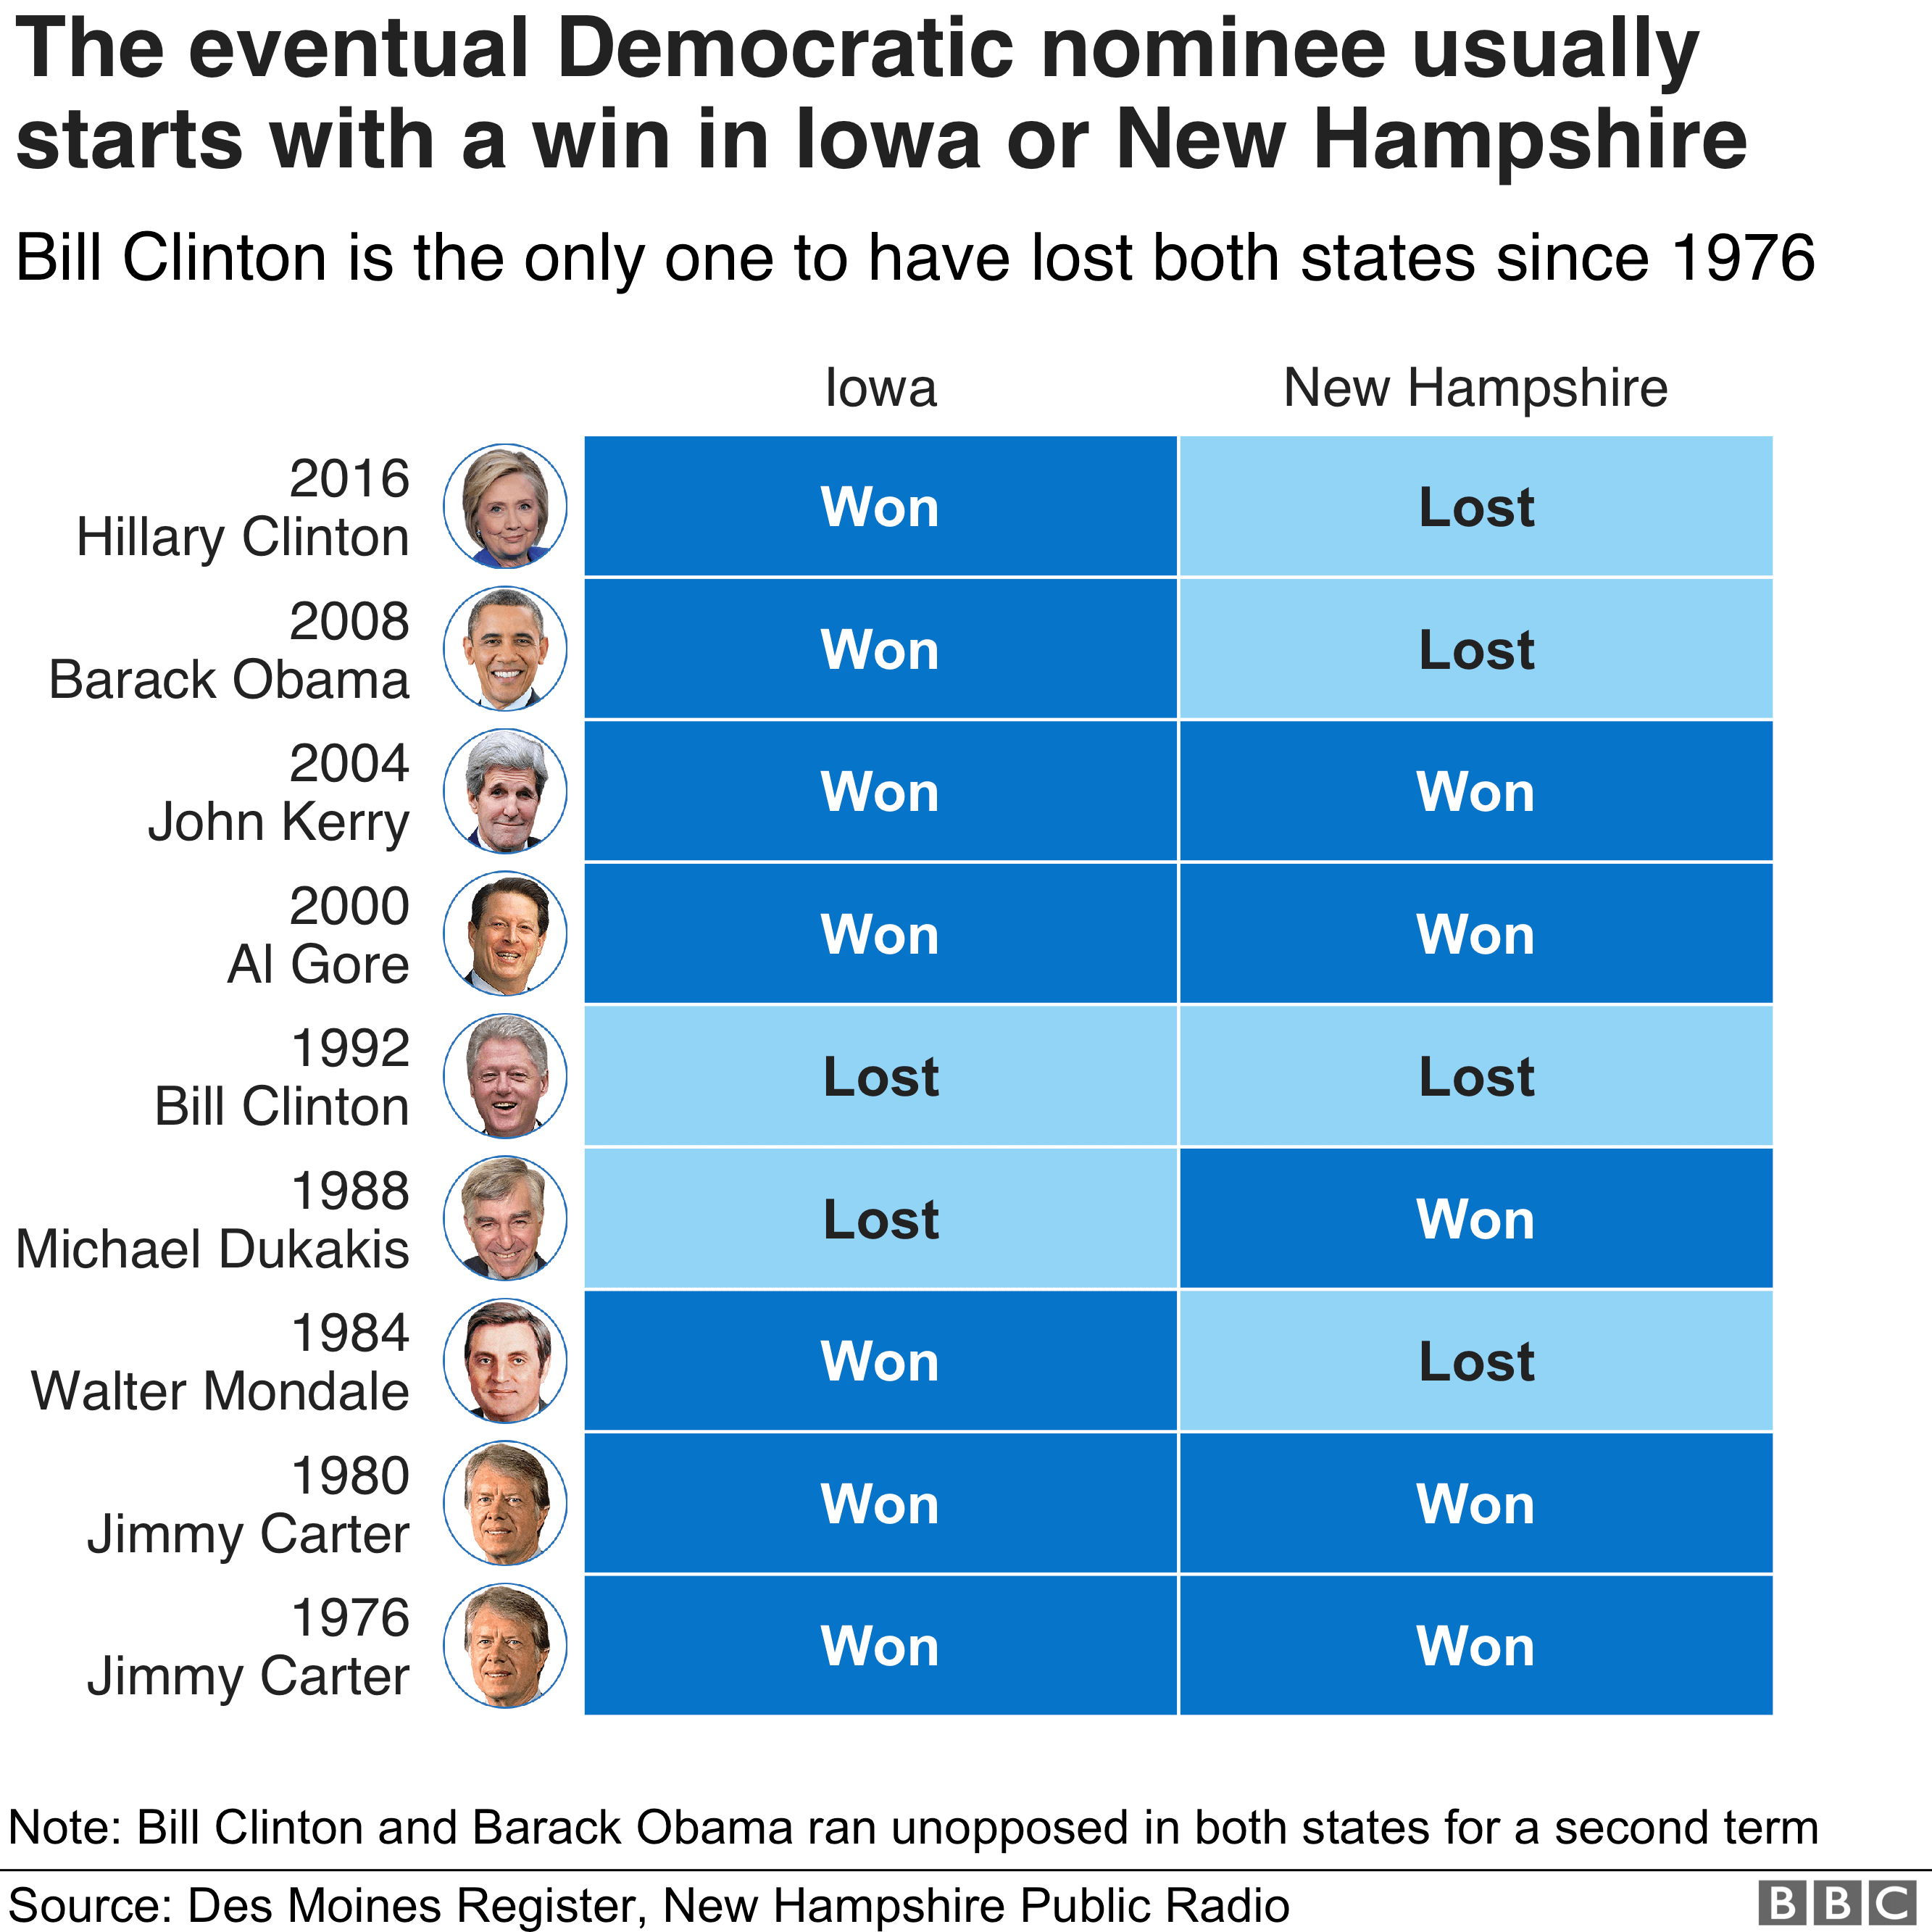 Chart showing previous Democratic nominees and whether they won the Iowa caucus and New Hampshire primary